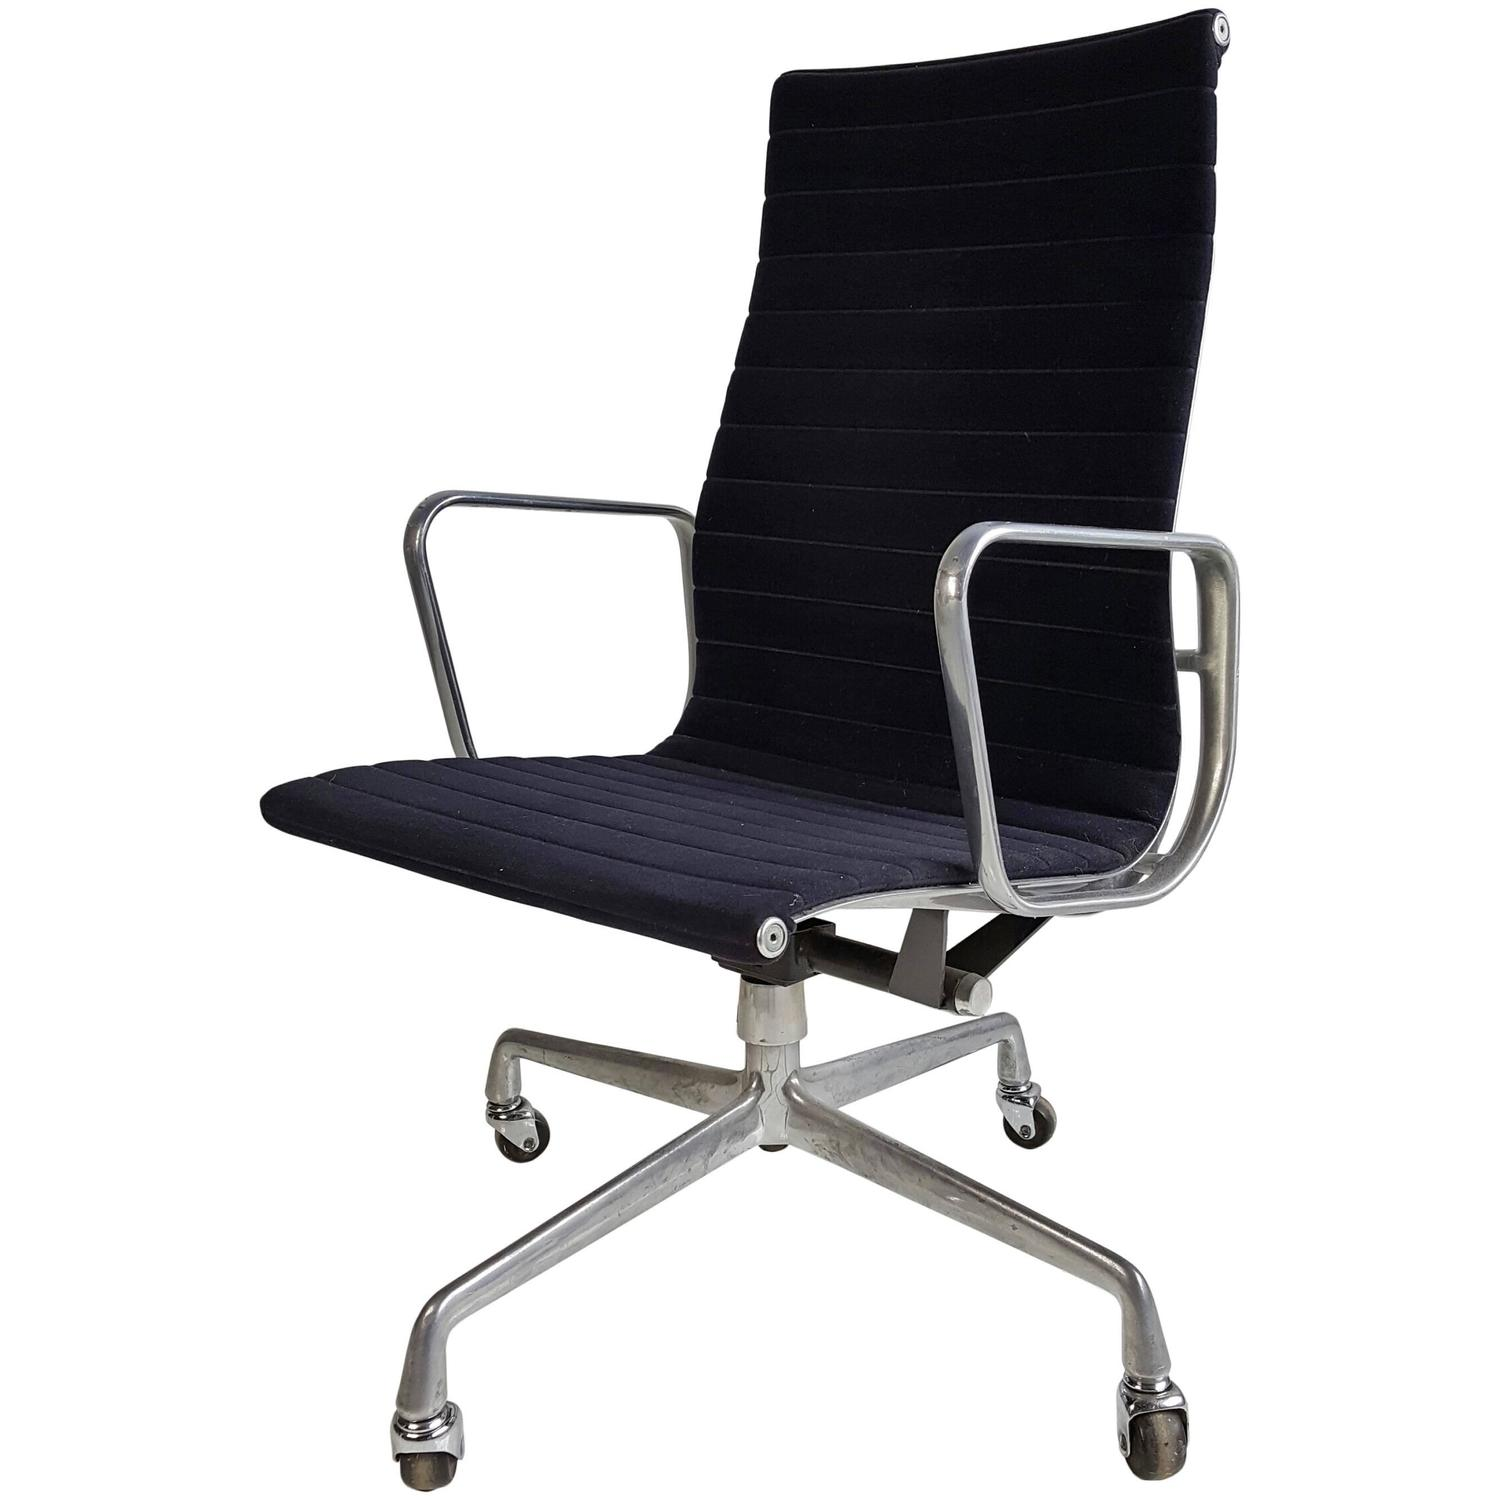 charles eames for herman miller executive chair at 1stdibs